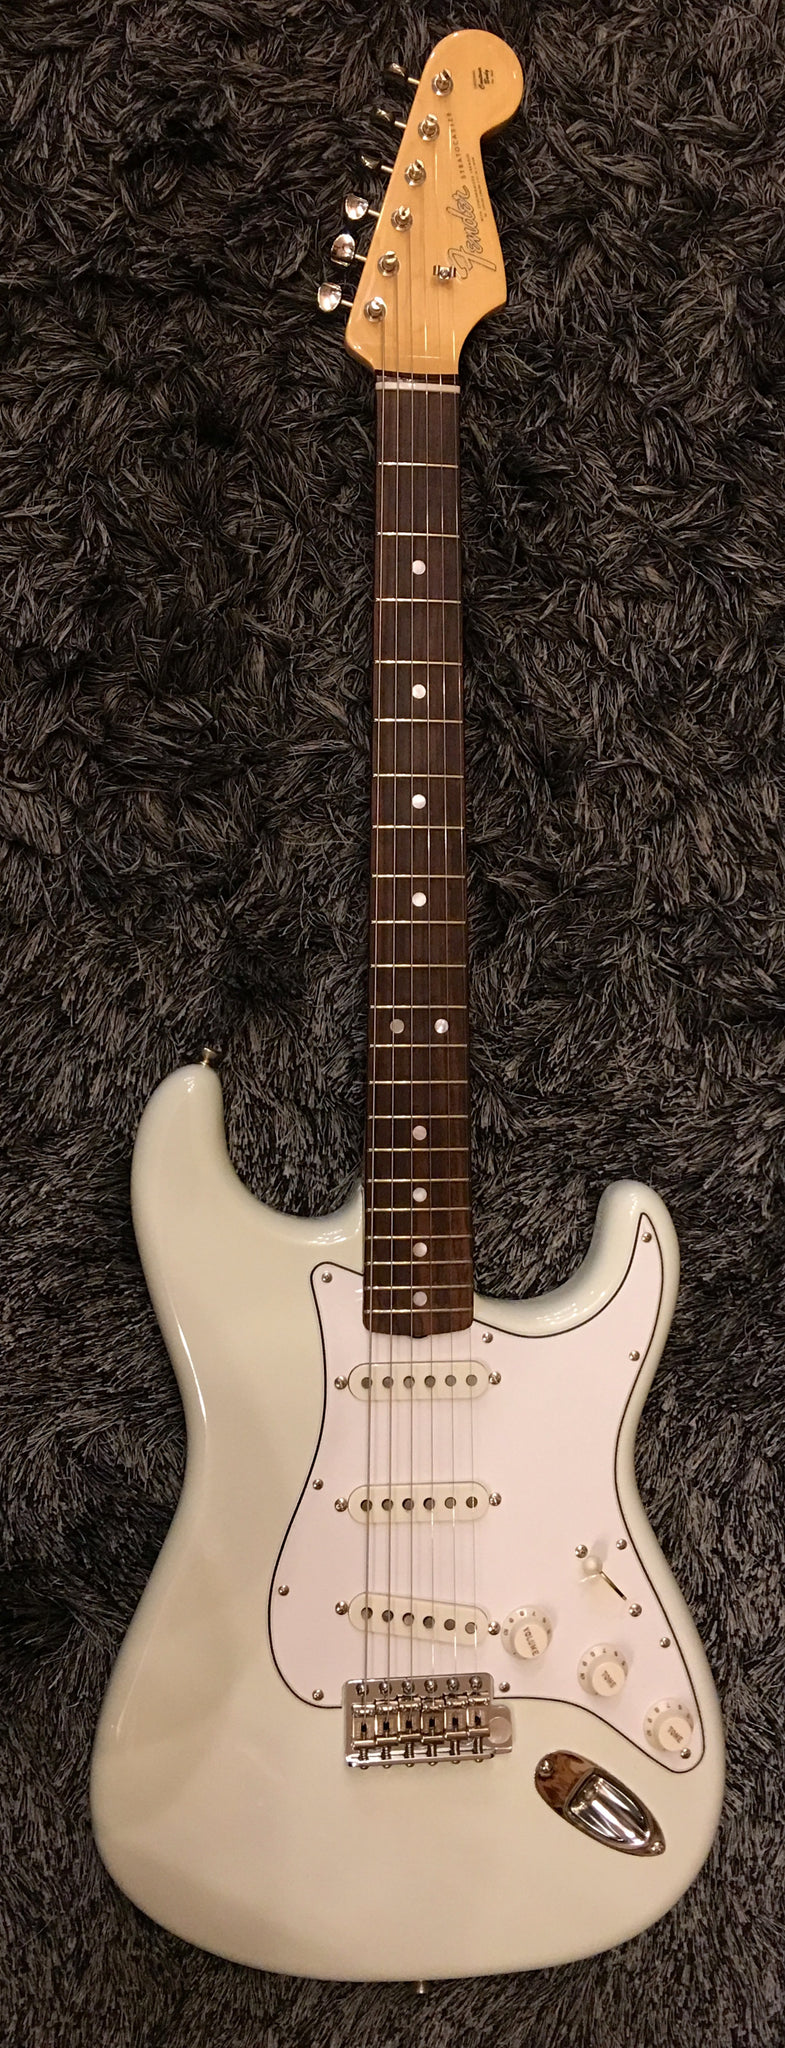 Fender American Vintage '65 Stratocaster - Olympic White with Rosewood Fingerboard